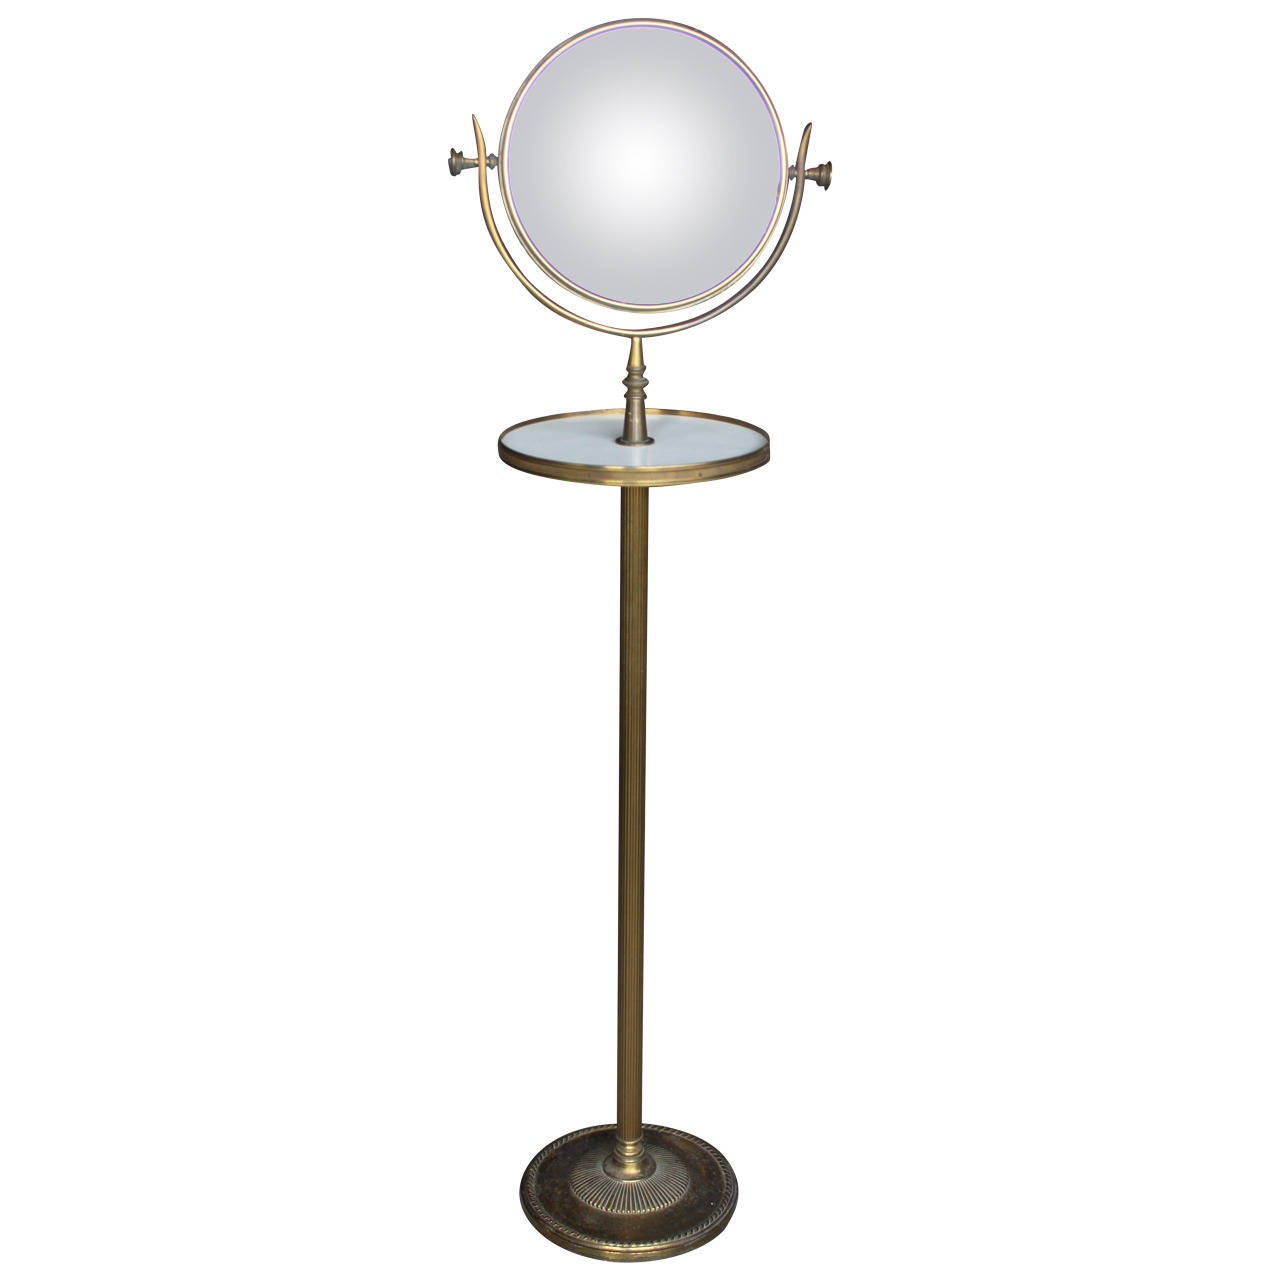 Brass vanity mirror stand for sale at 1stdibs for Vanity stand